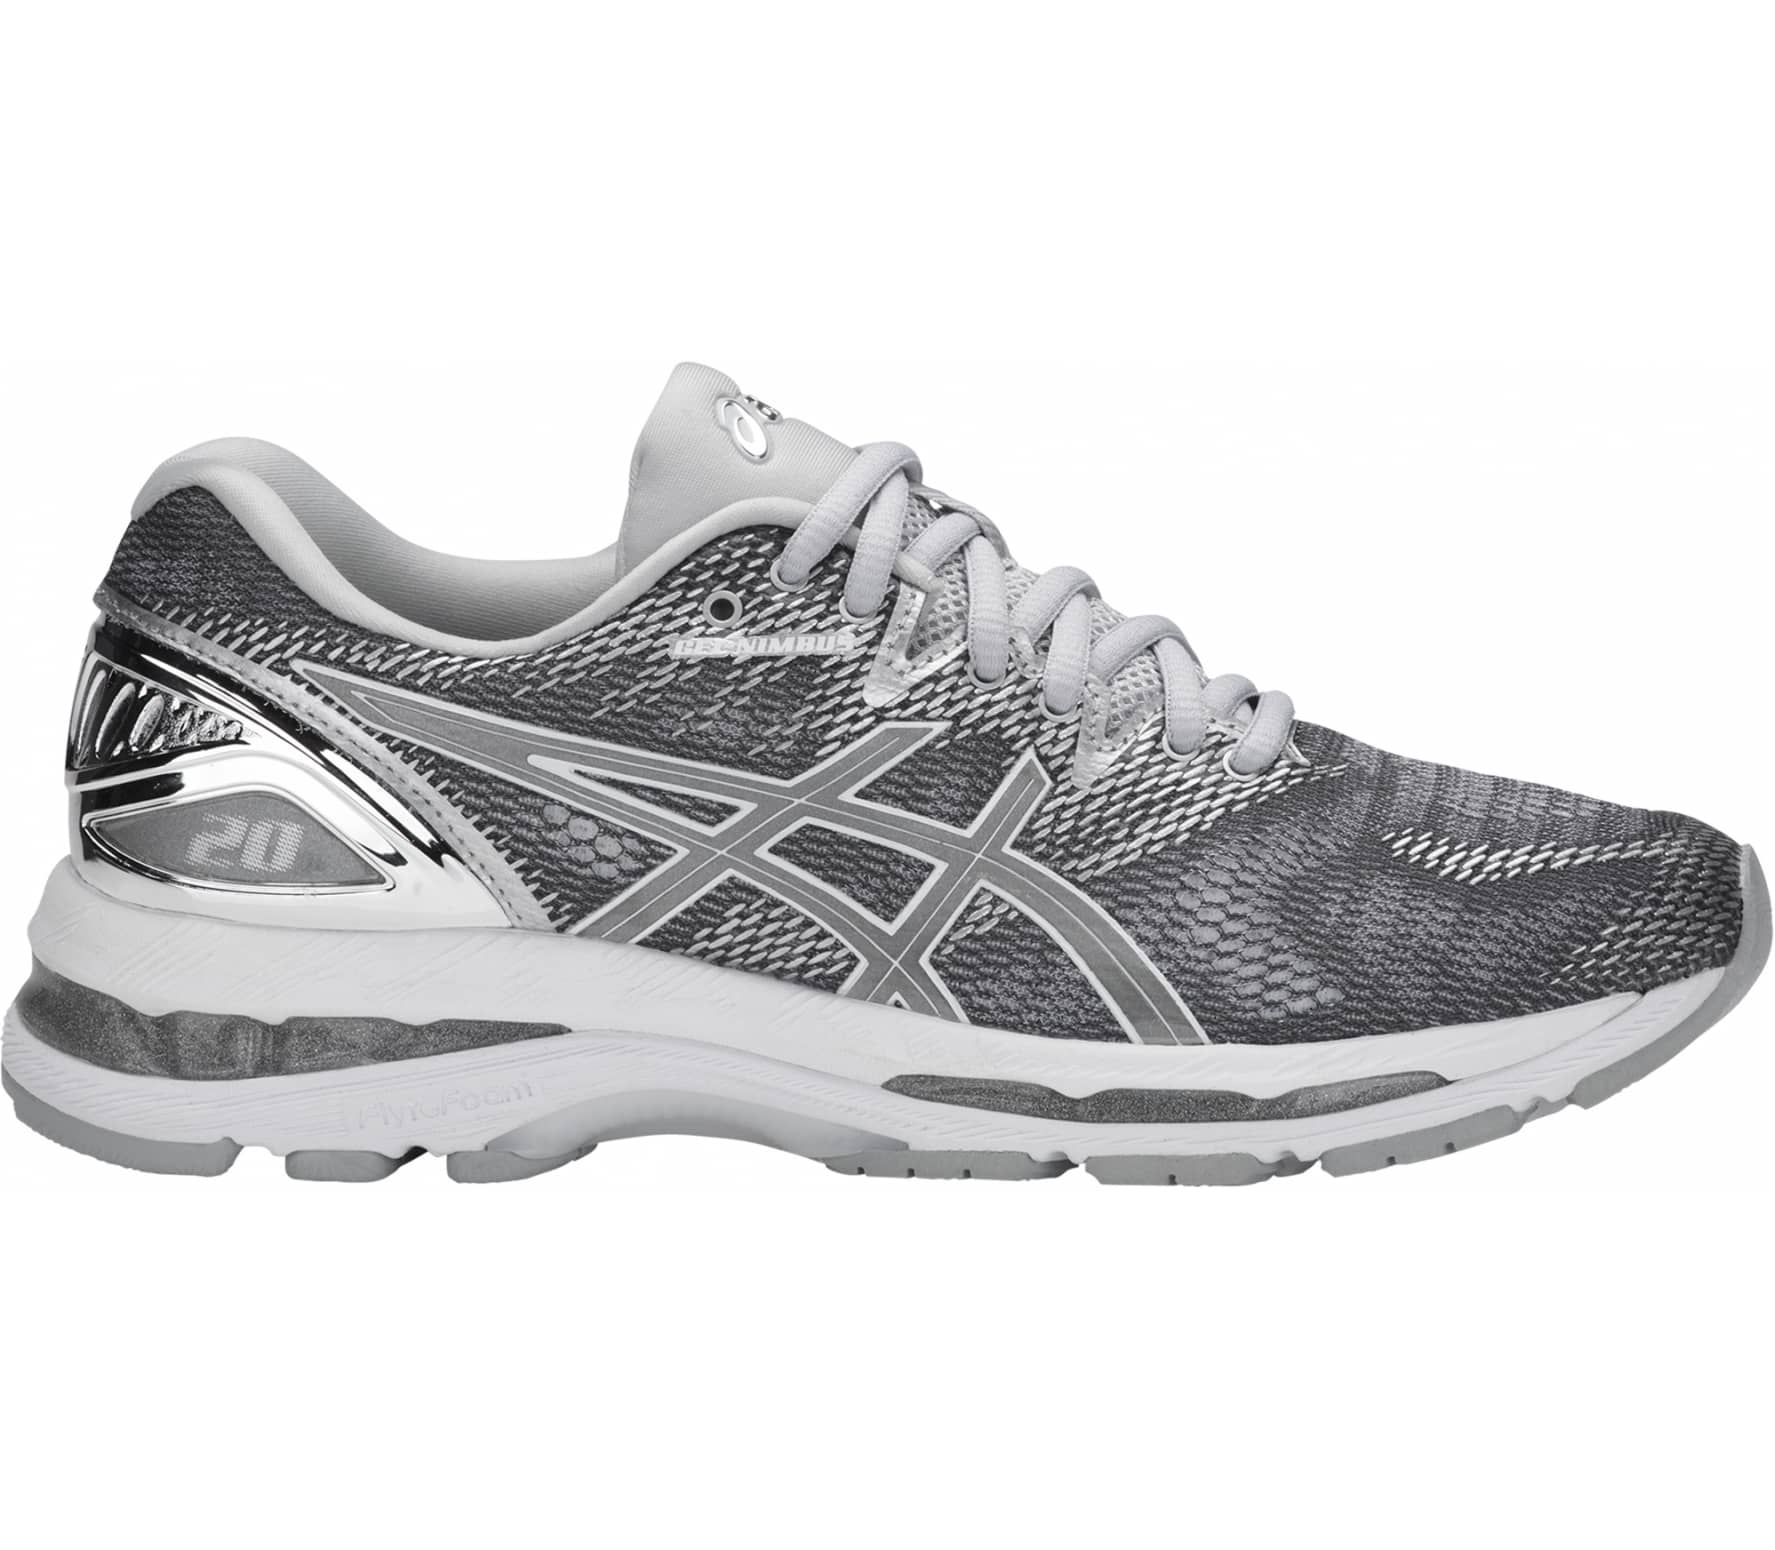 ASICS - Gel-Nimbus 20 Platinum women s running shoes (white grey ... aa40b19e9791